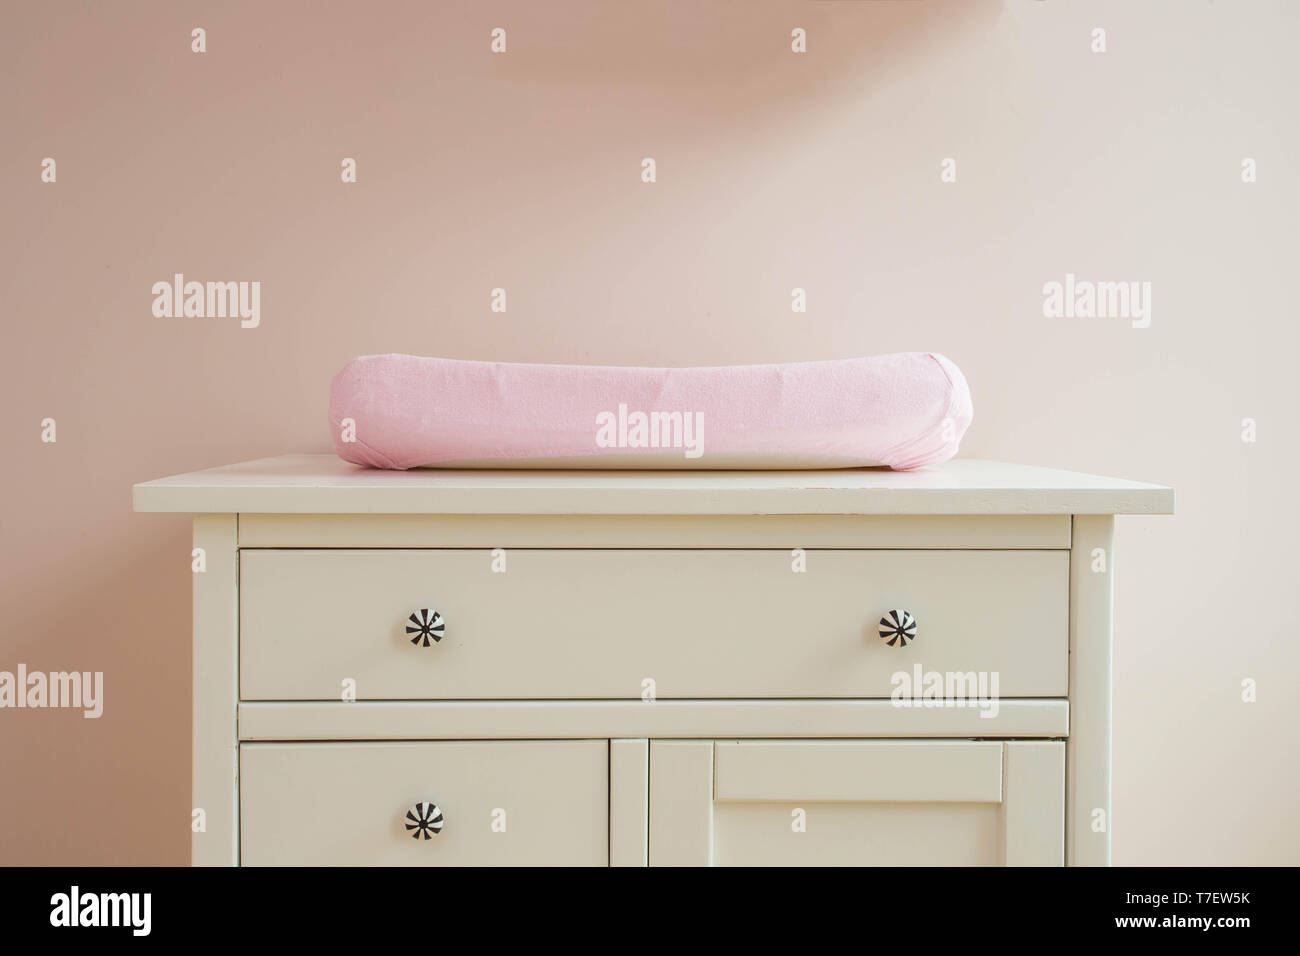 039ae7c95eee Baby Changing Room Stock Photos & Baby Changing Room Stock Images ...